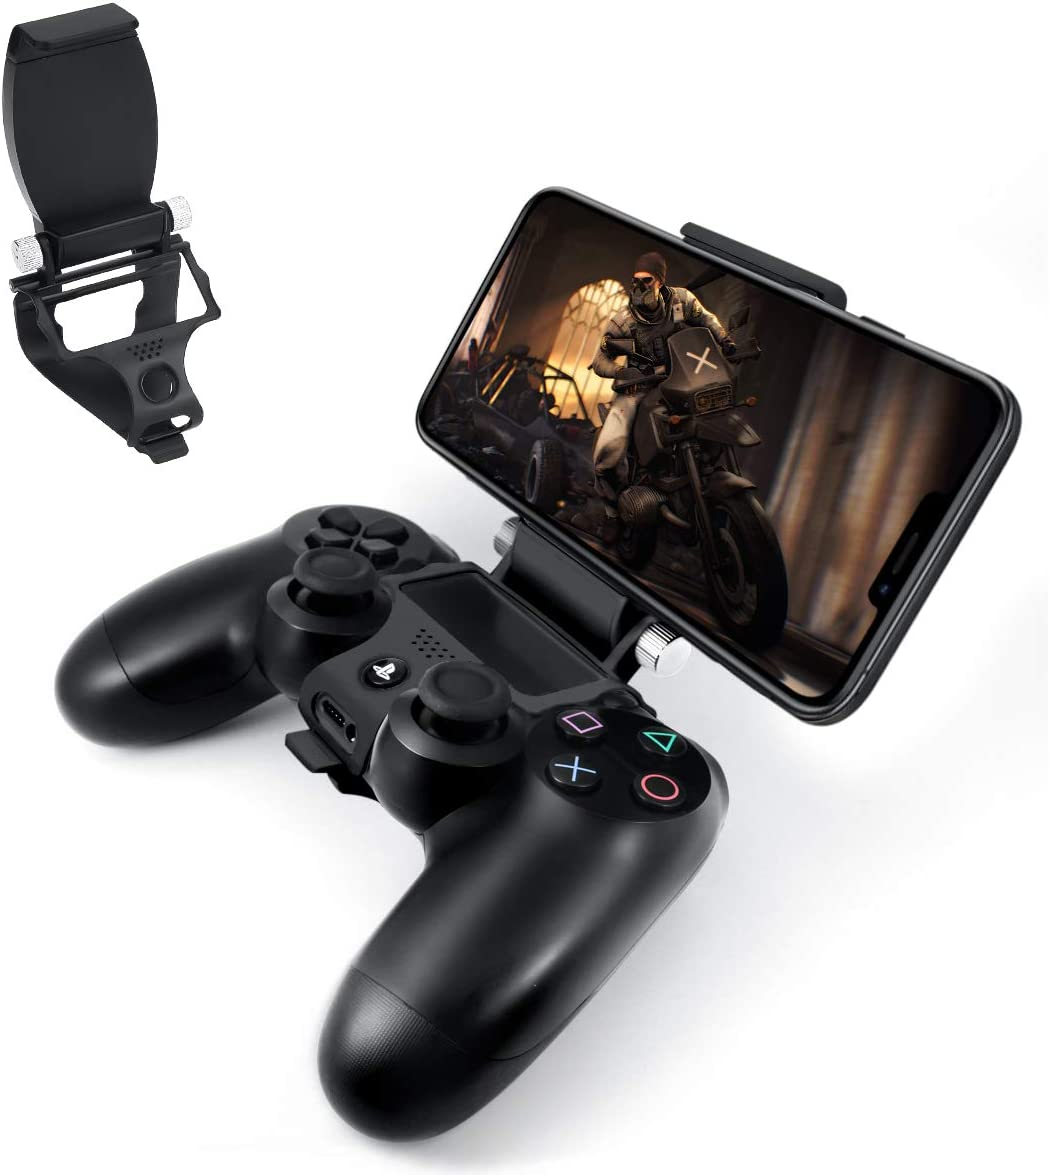 Newseego PS4 Controller Tablet & Phone Mount,Controlador PS4 Plegable Soporte de Fijación Inteligente con Cables OTG para Playstation Dualshock 4,Juego de Soporte de Montaje para PS 4 Slim Pro: Amazon.es: Electrónica